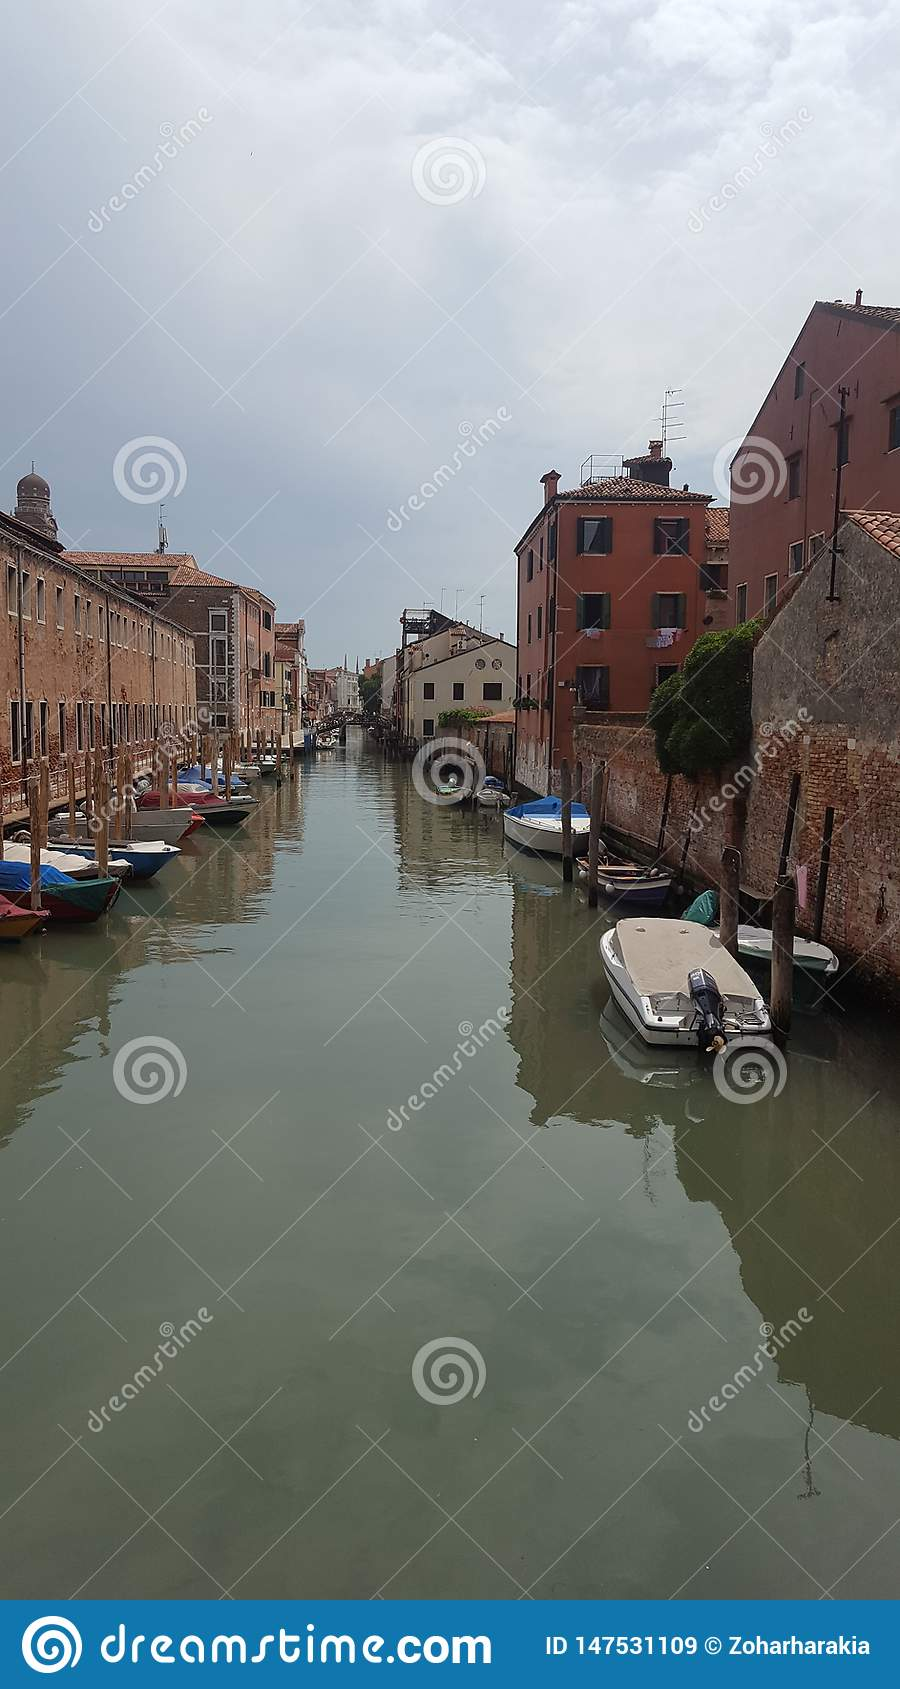 Boote am Kanal in Venedig